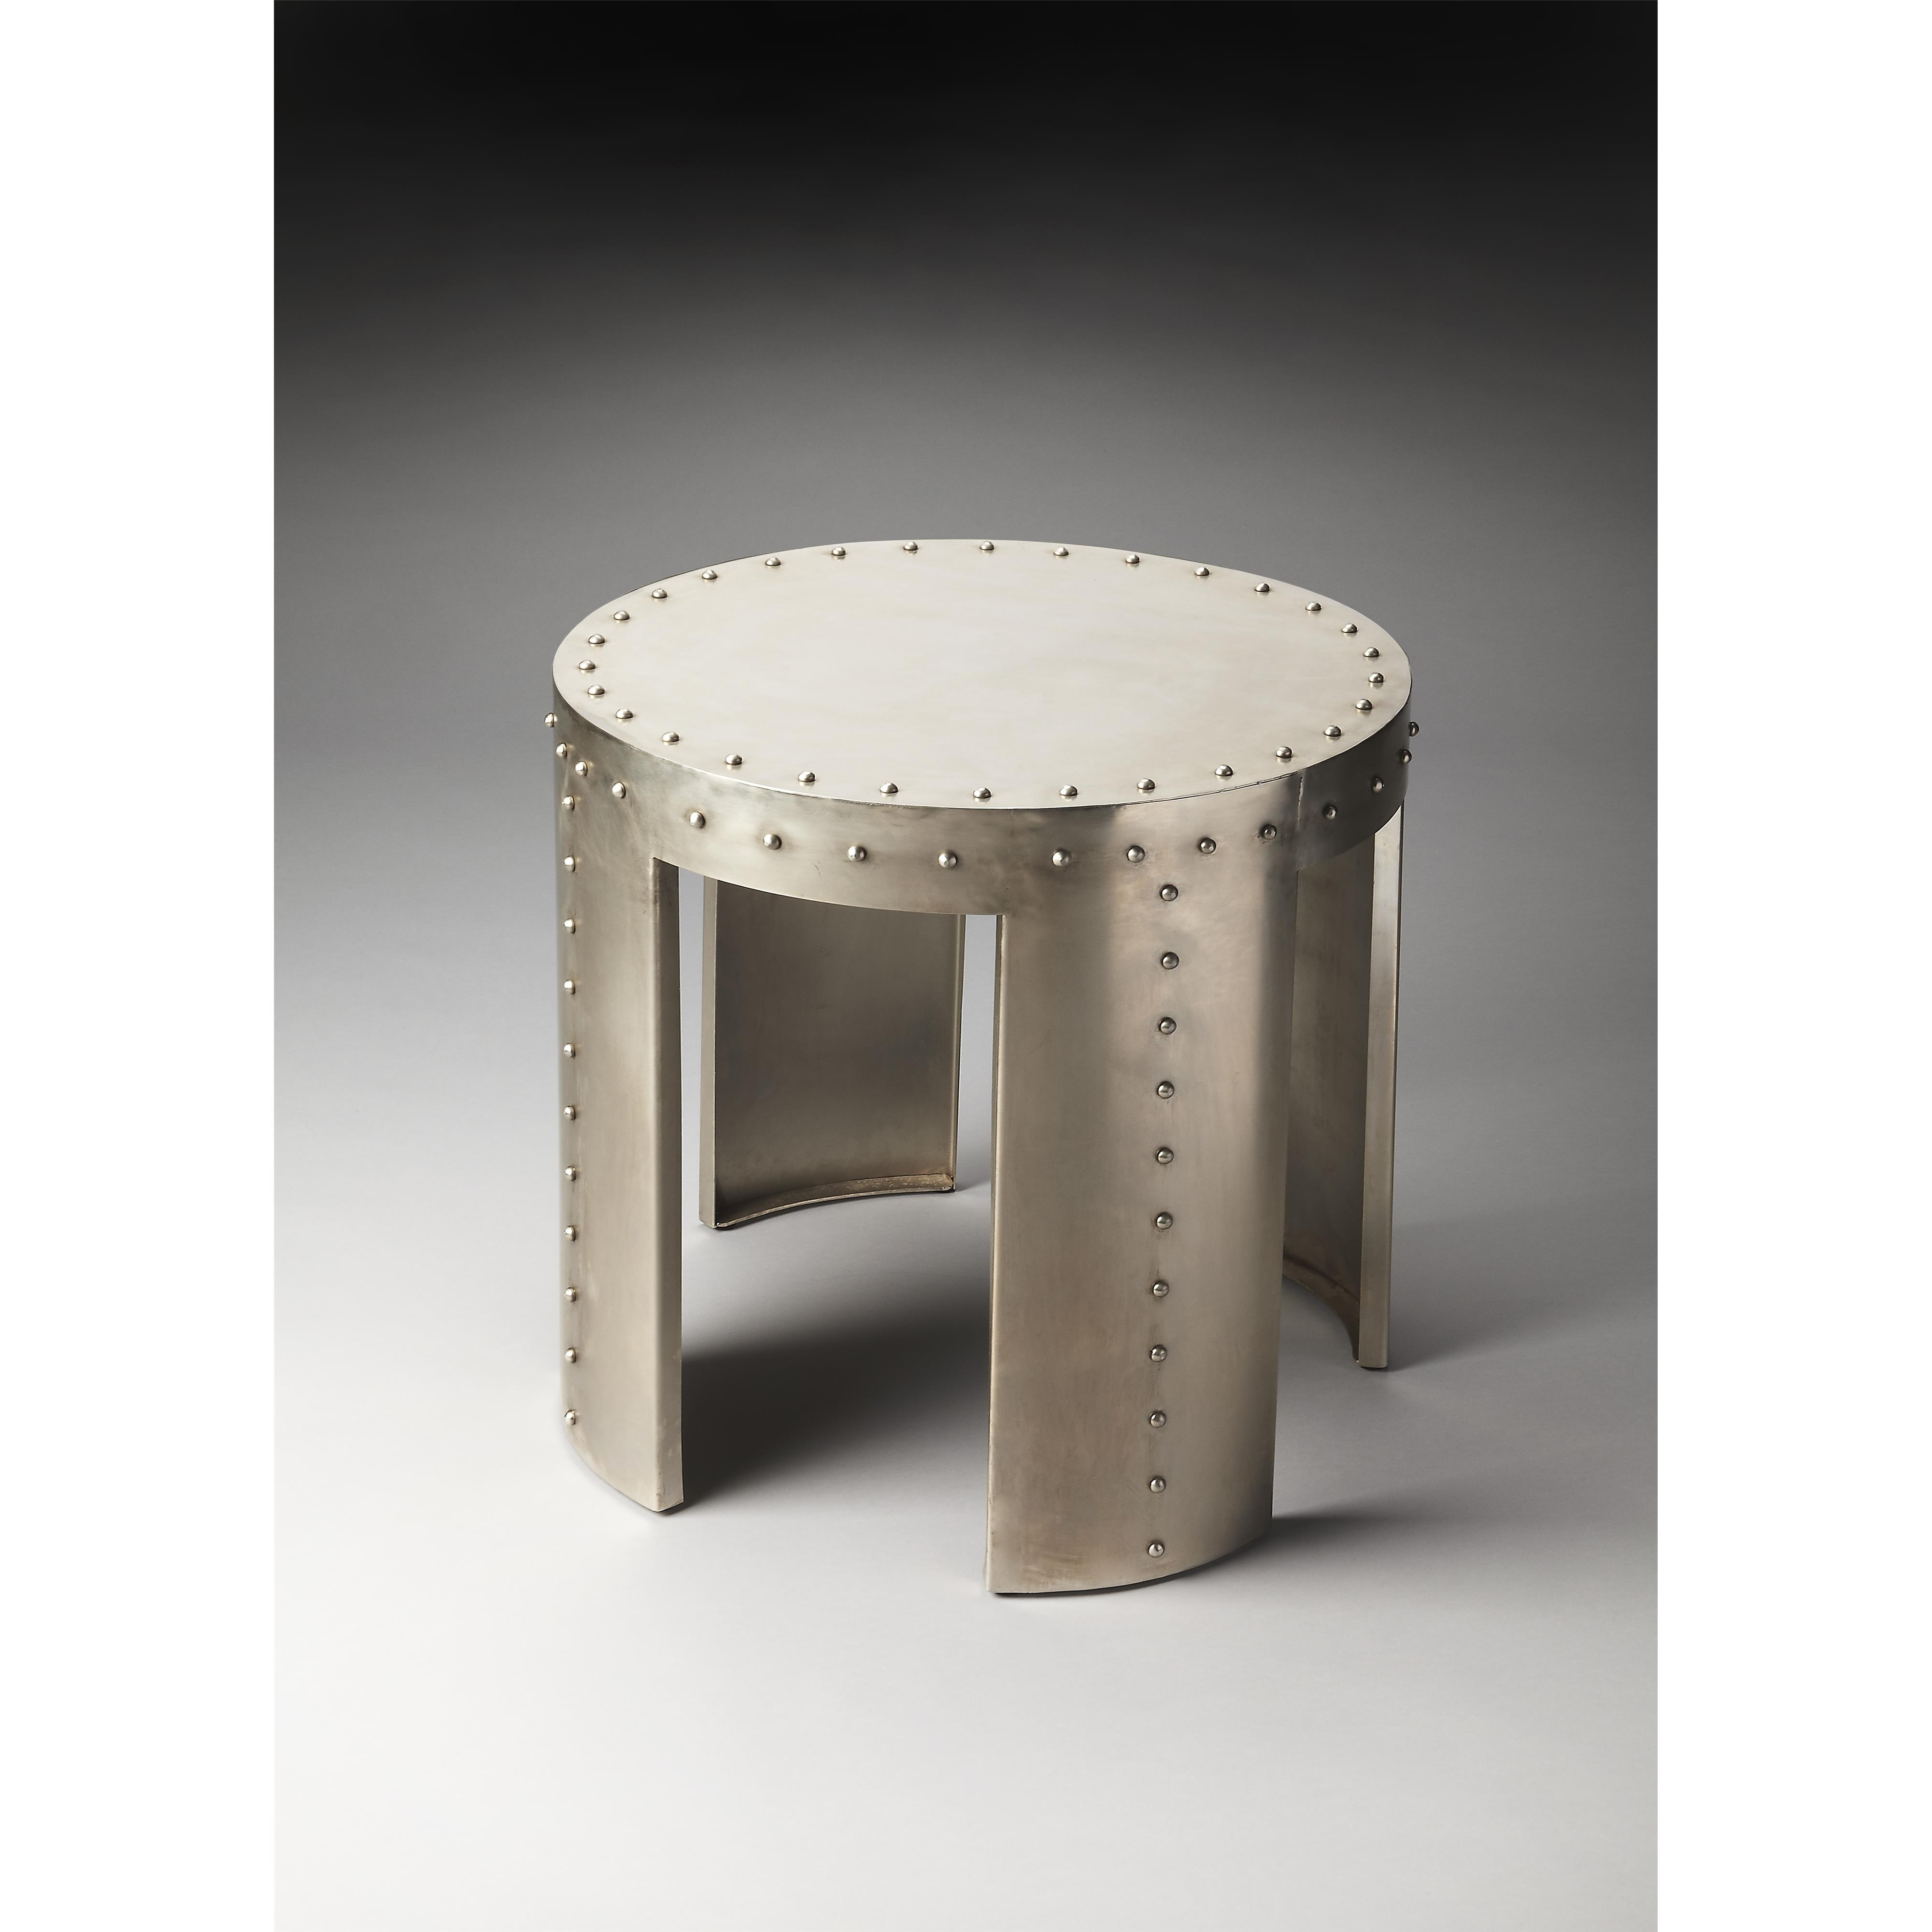 Butler Specialty Company Industrial Chic Accent Table - Item Number: 5116330